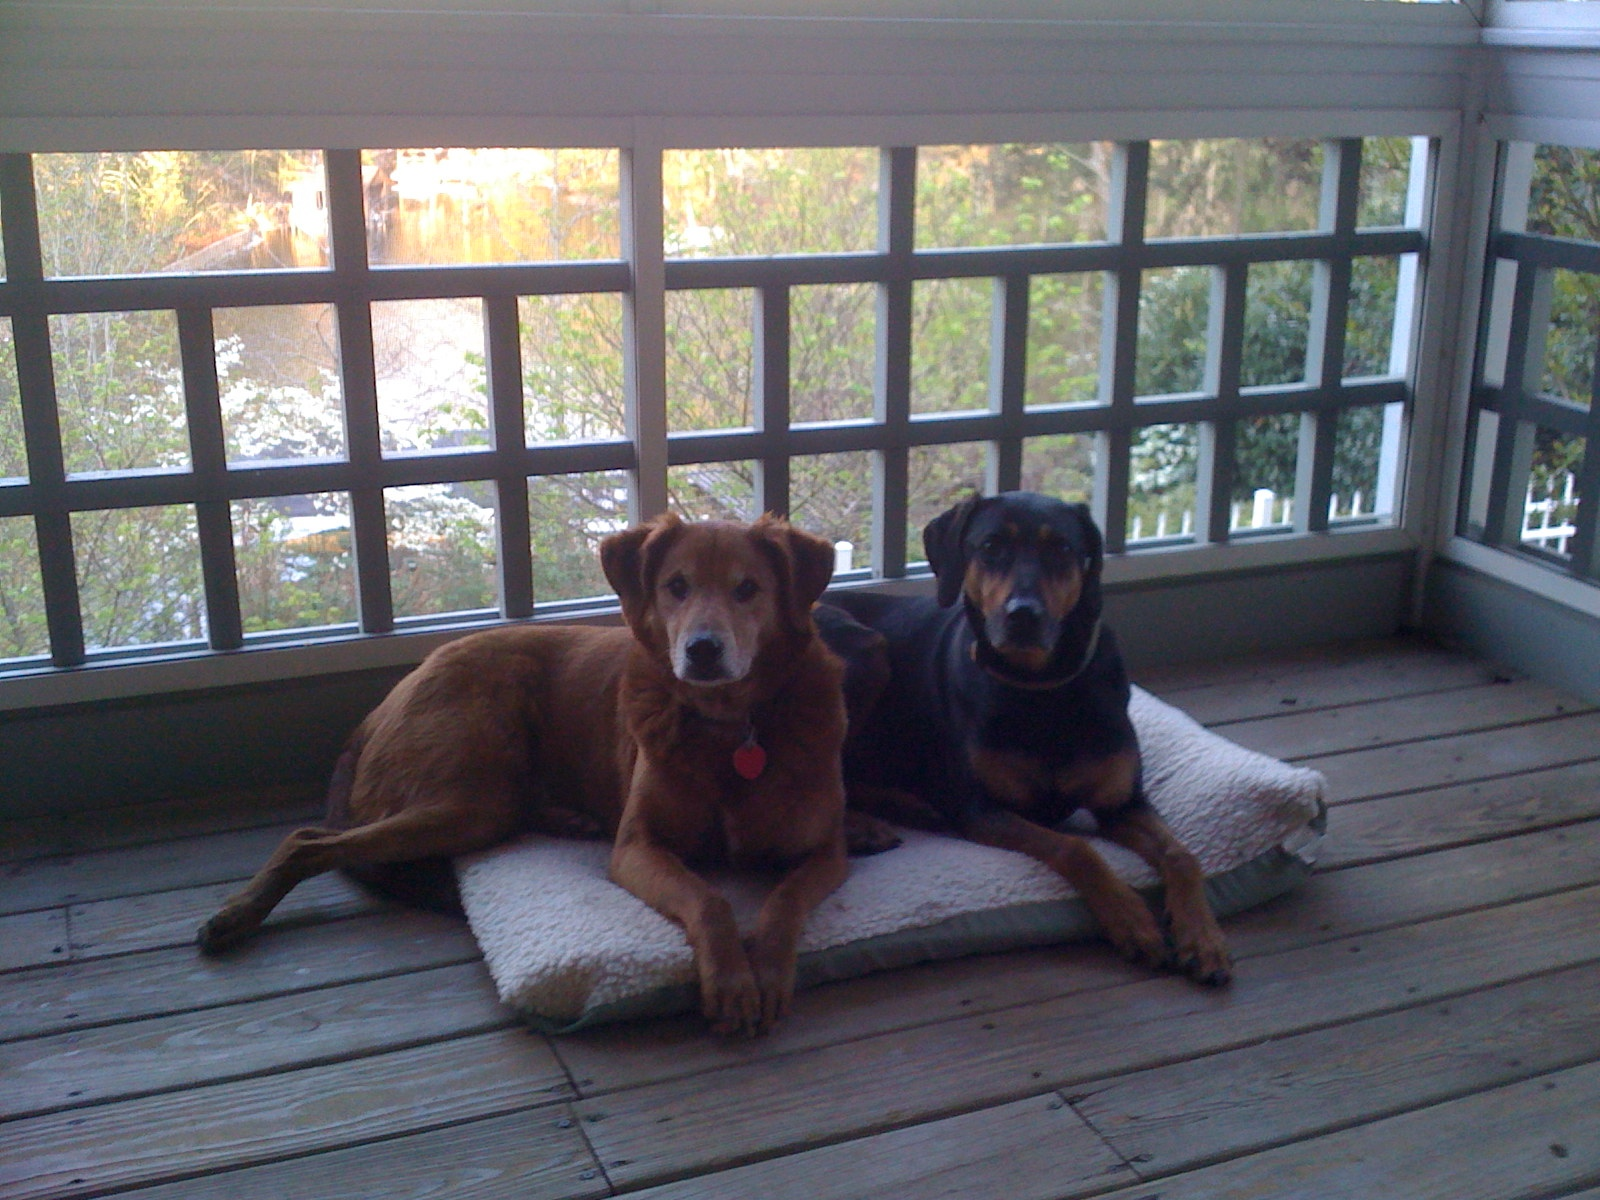 Ozzy and Gilly hanging out on our porch at the lake house in Knoxville.